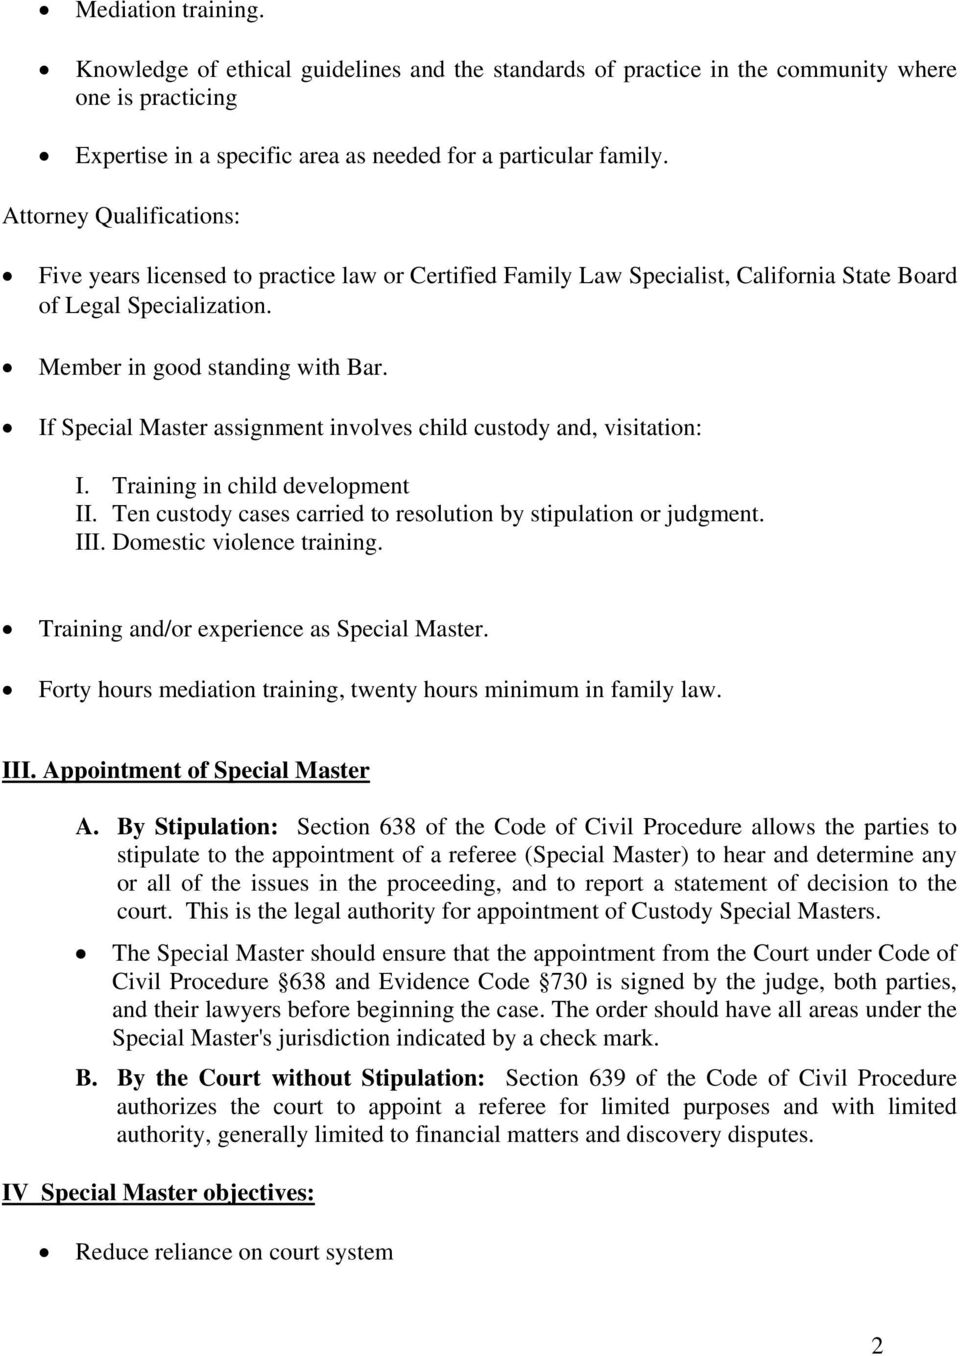 If Special Master assignment involves child custody and, visitation: I. Training in child development II. Ten custody cases carried to resolution by stipulation or judgment. III.